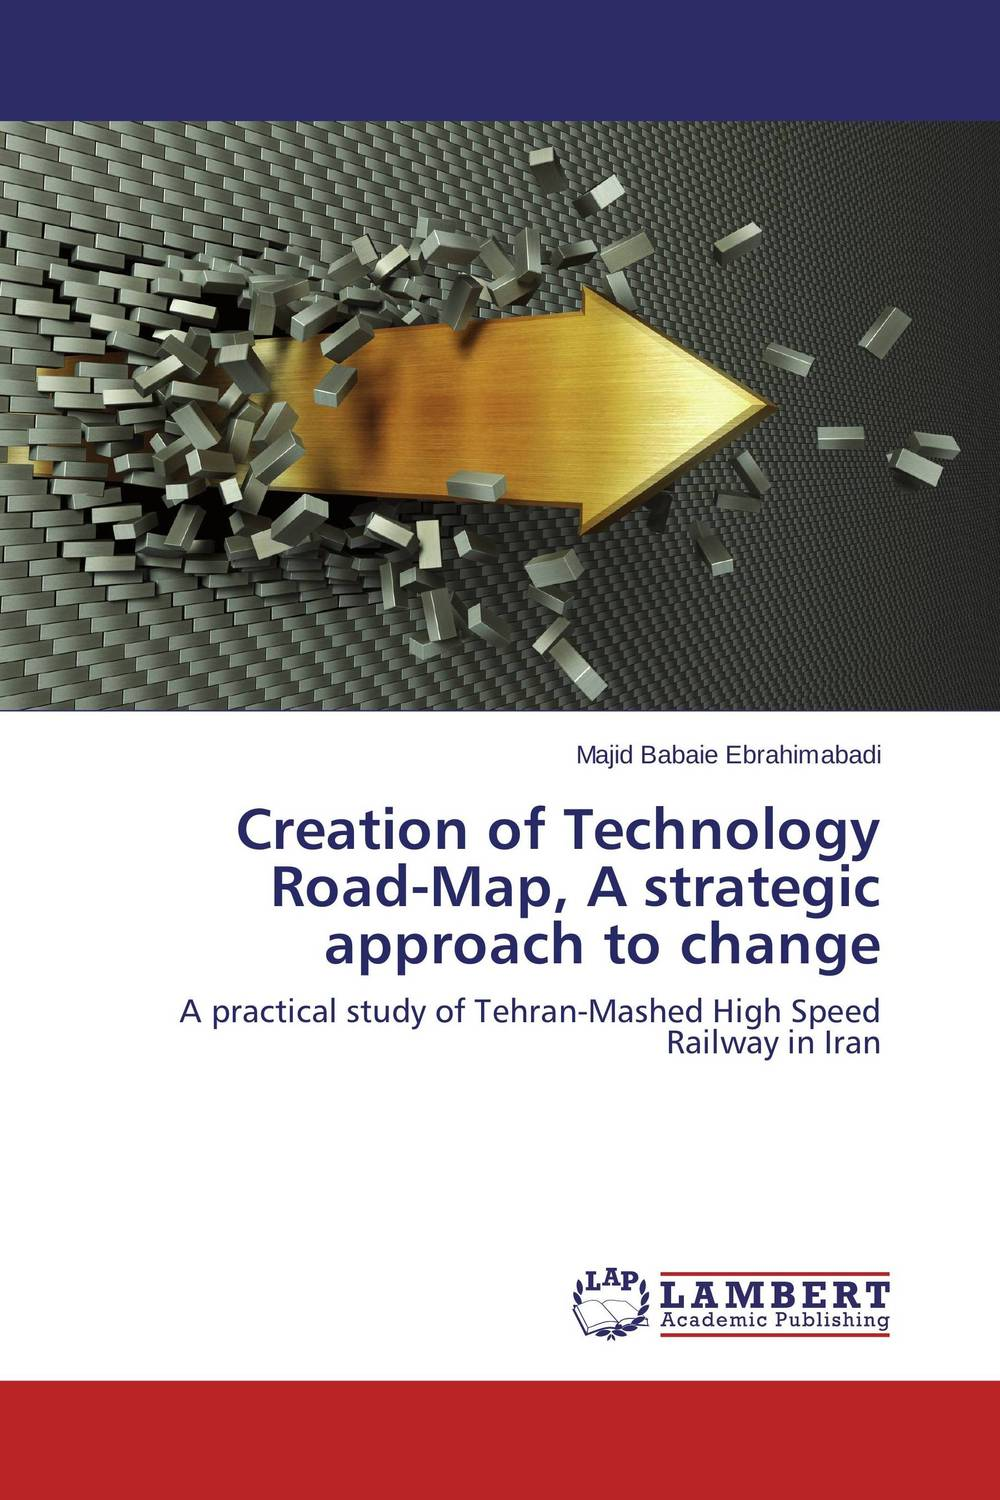 Creation of Technology Road-Map, A strategic approach to change